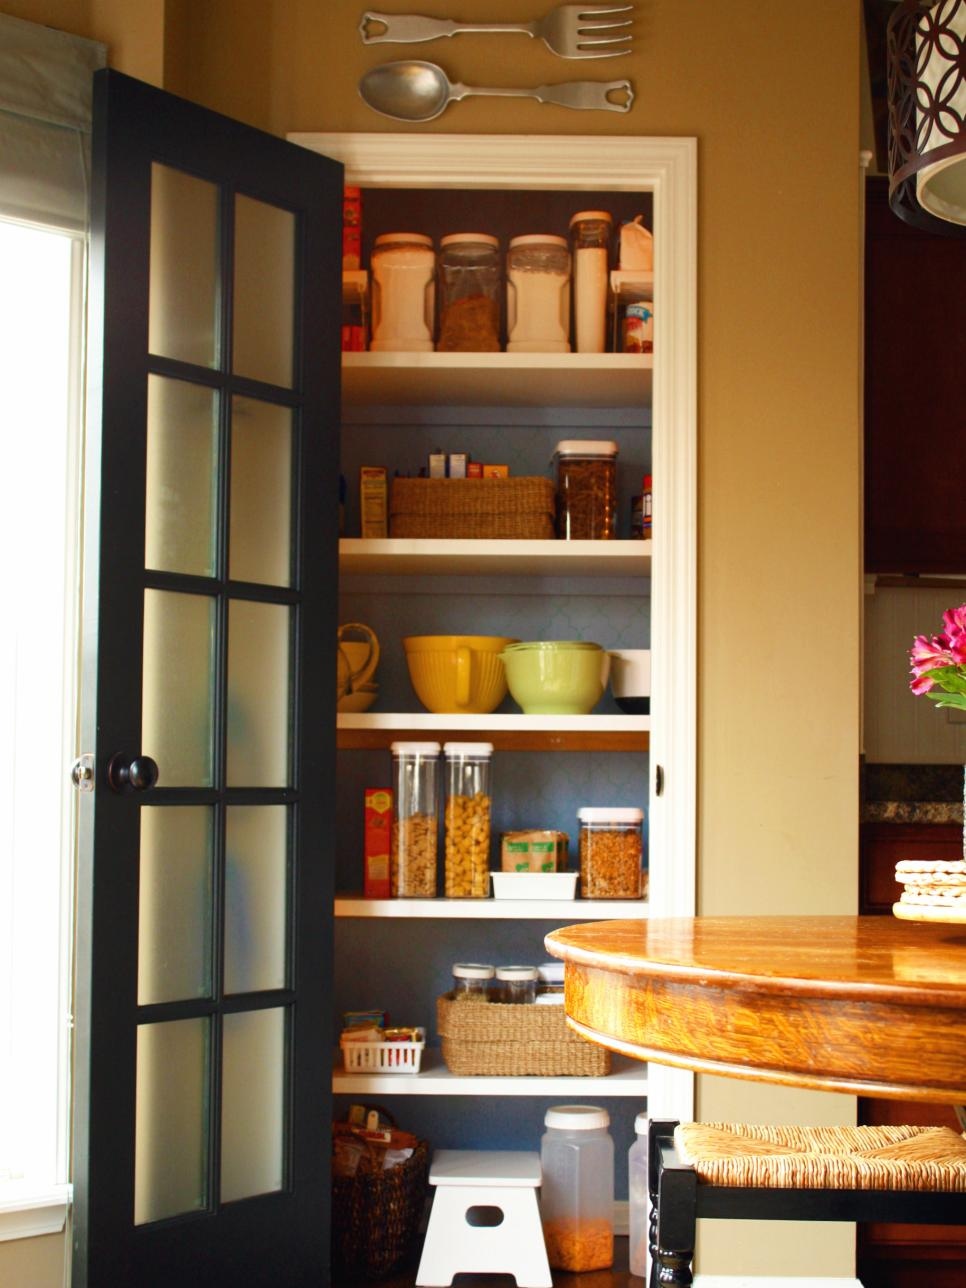 Design ideas for kitchen pantry doors diy for Pantry ideas for a small kitchen